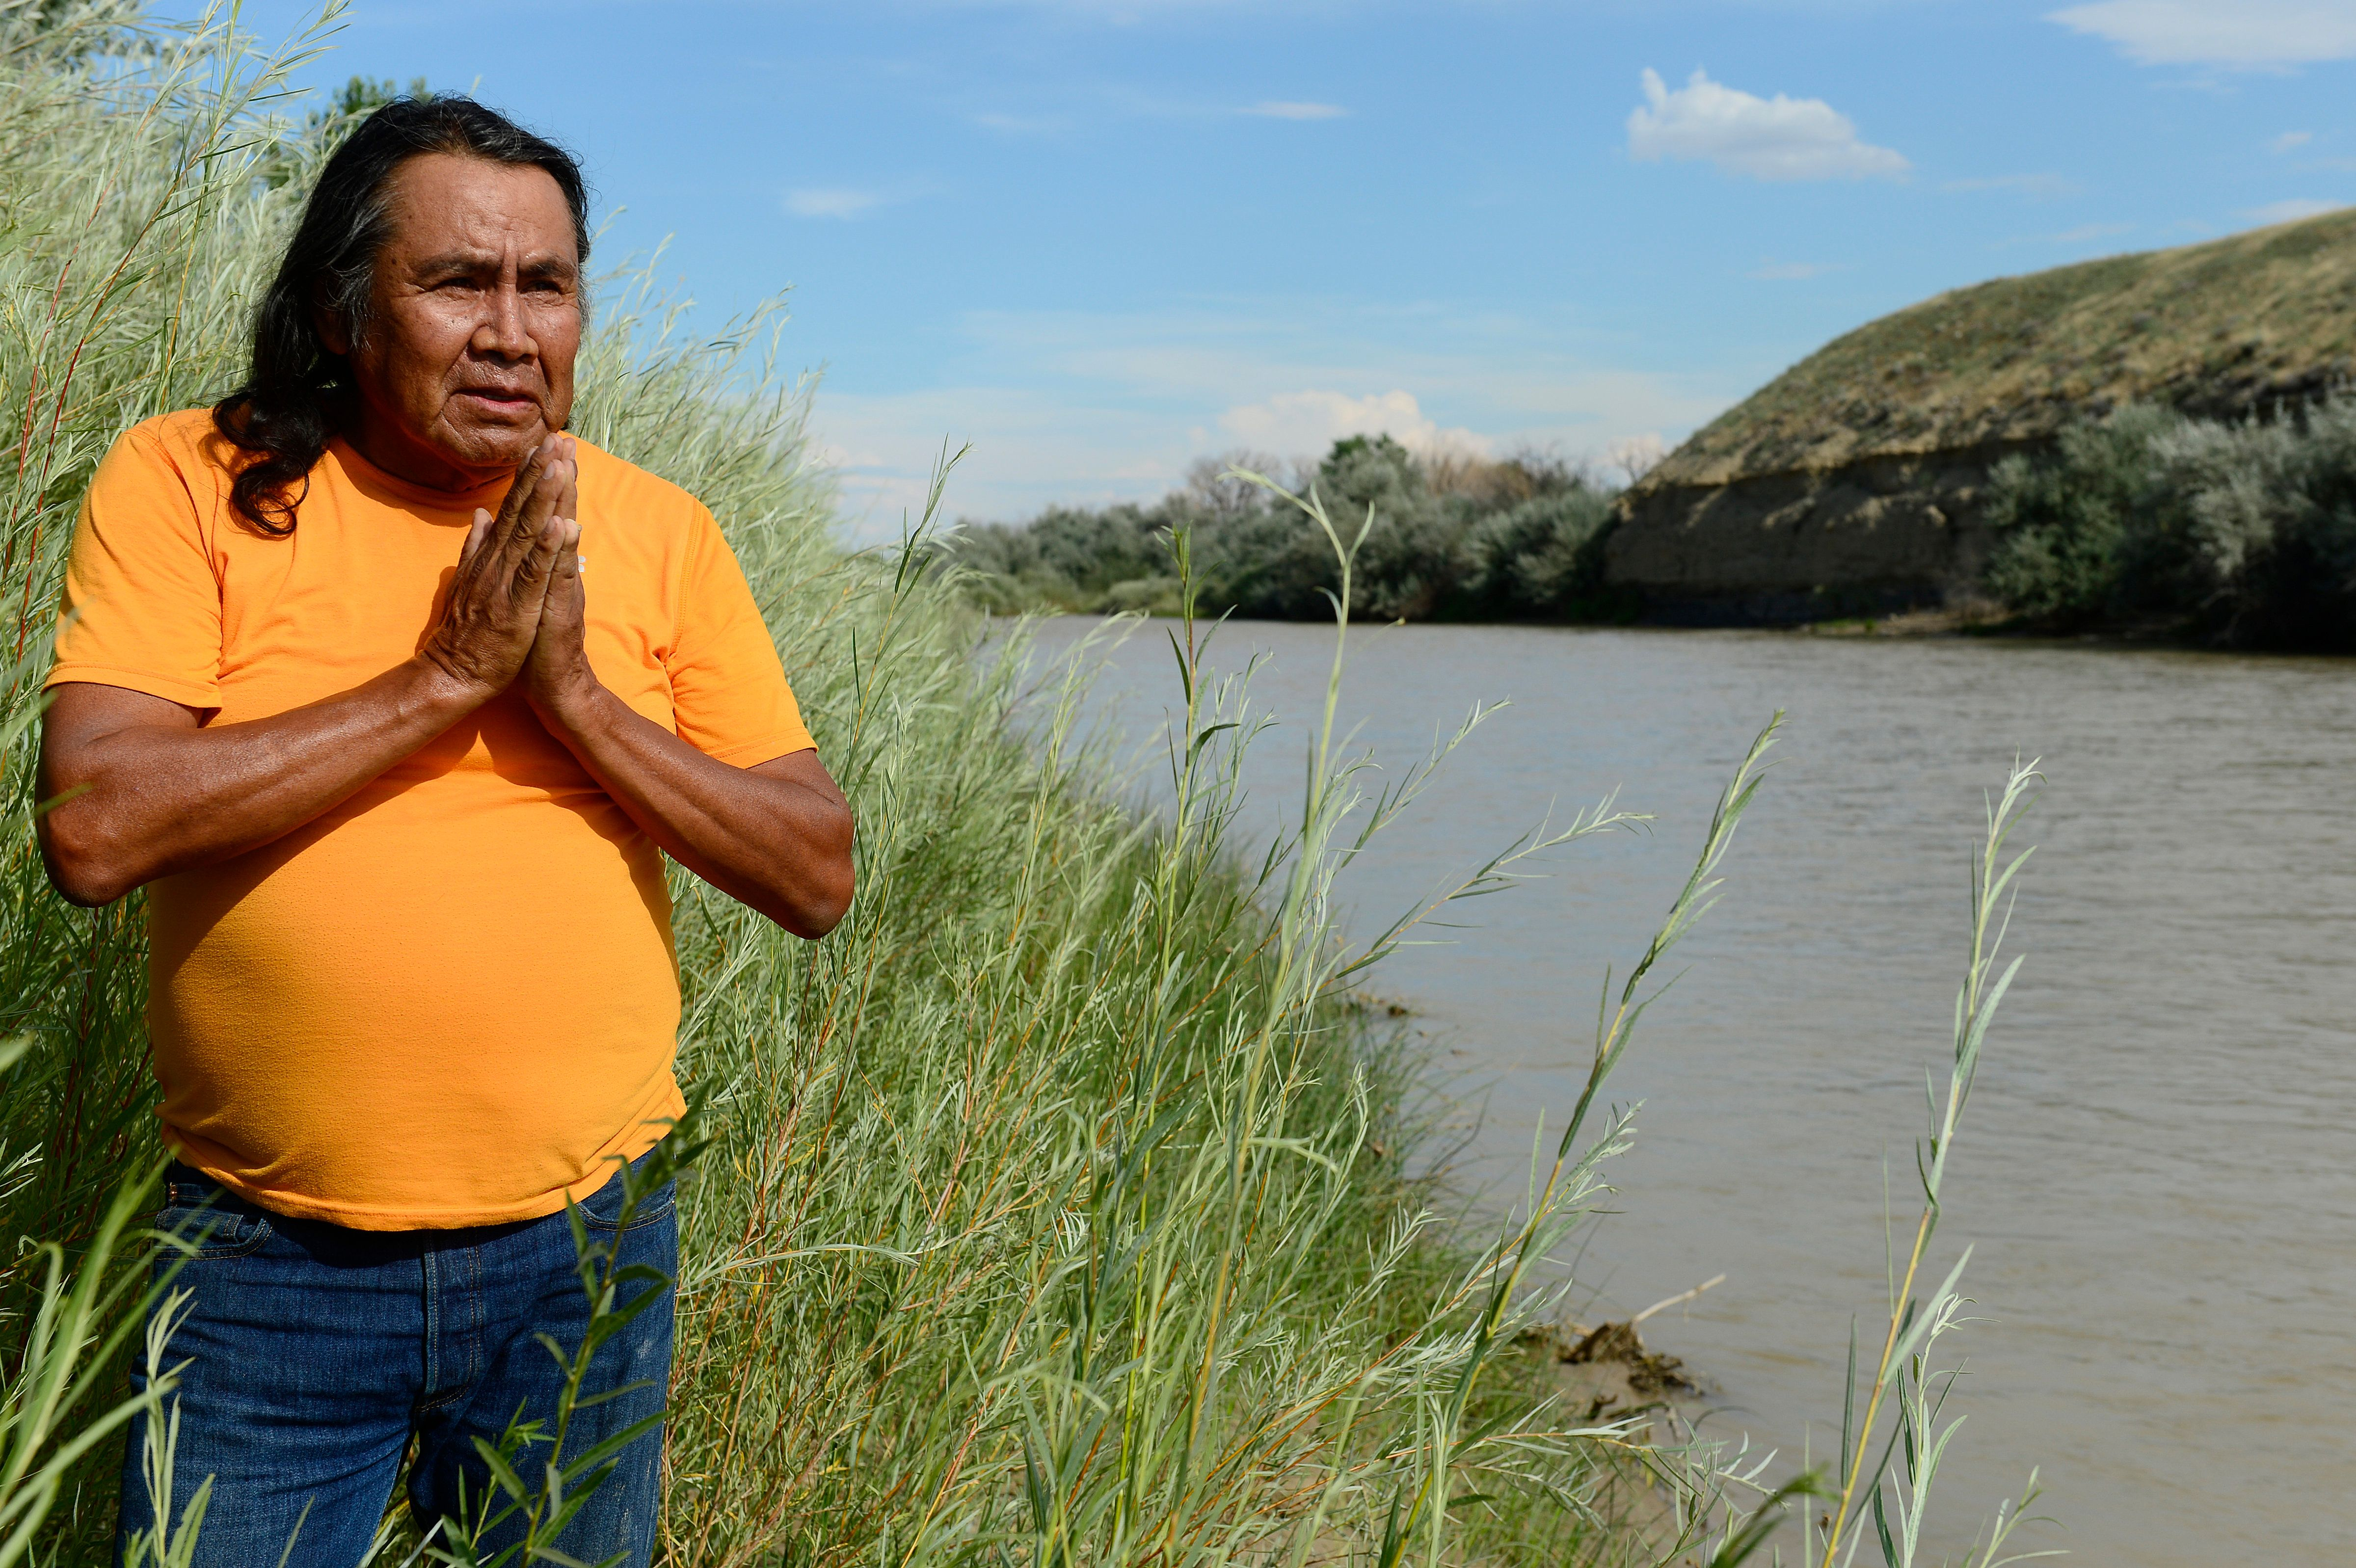 SHIPROCK, NM - AUGUST 15: Roy Etcitty looks out over the San Juan River while reflecting on what the river means to him August 15, 2015. Etcitty, who grew up on the San Juan River, is one of the many farmers that has been affected by the contamination of the San Juan River, causing the water to the Navajo Nation to shut off to farmers and residents who depend on that as their main water source. Close to 20 charters of the Navajo Nation rely on the San Juan River for their farming and raising of livestock needs as well as many relying on the river for drinking water. (Photo By Brent Lewis/The Denver Post via Getty Images)